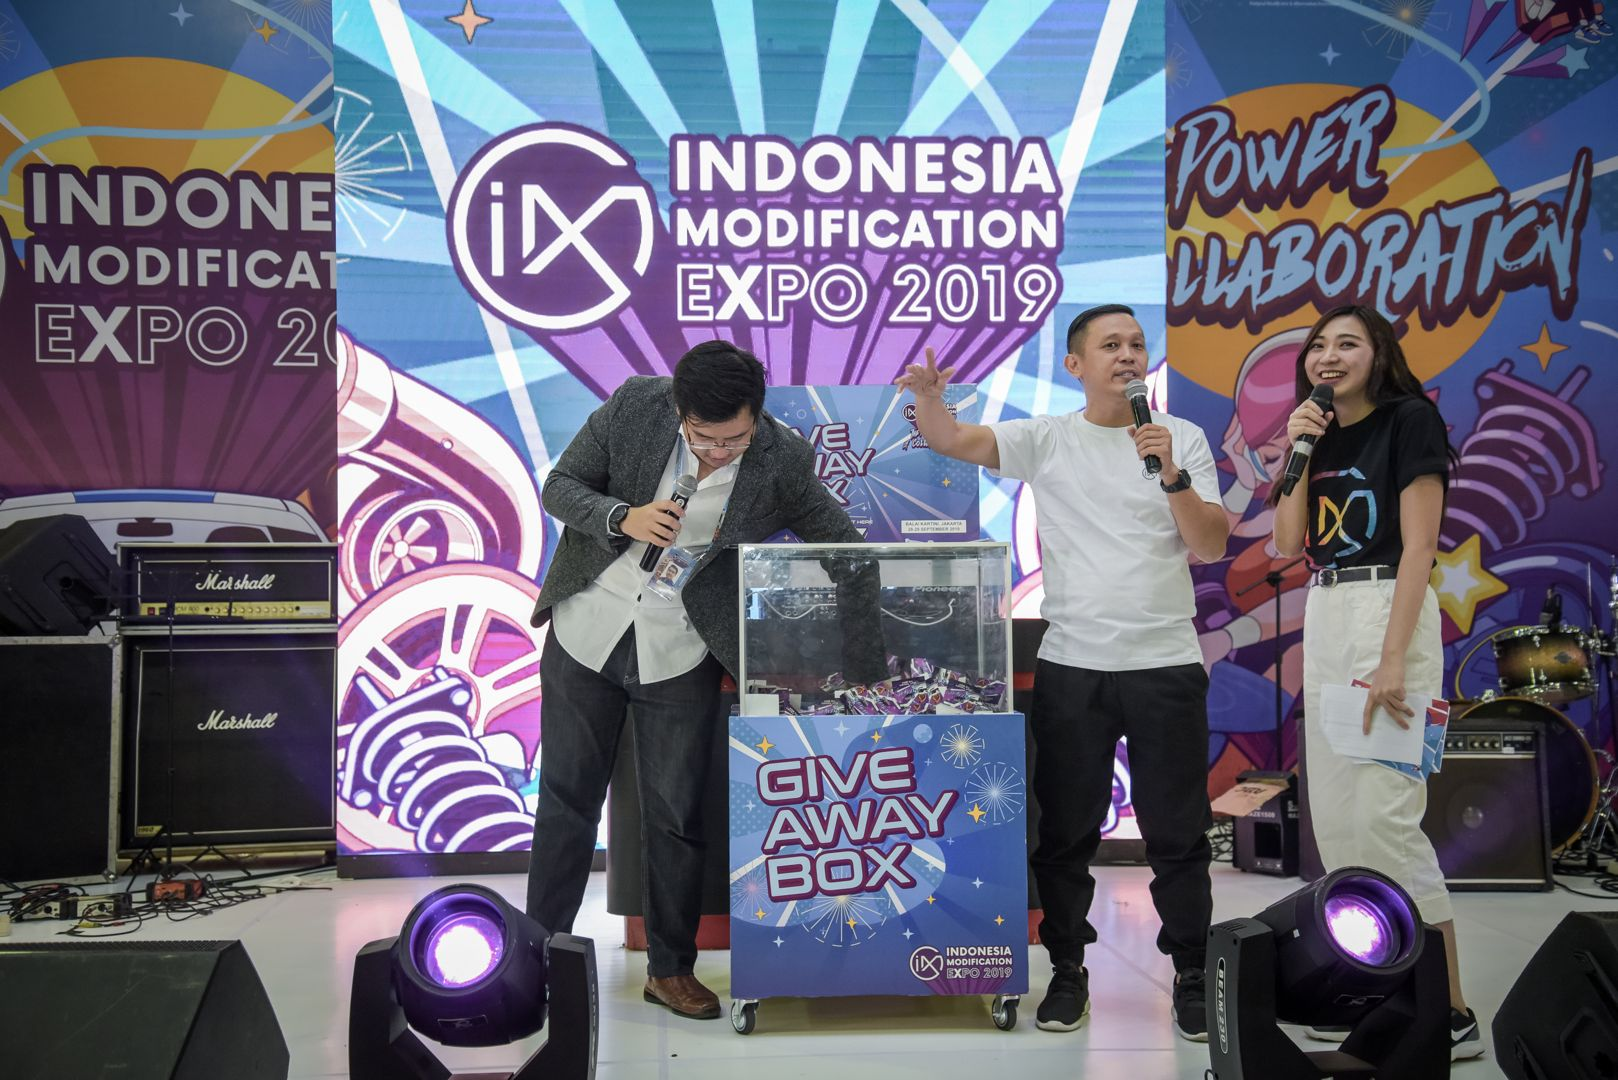 Imx - Indonesia modification expo giveaway 2019 (4)